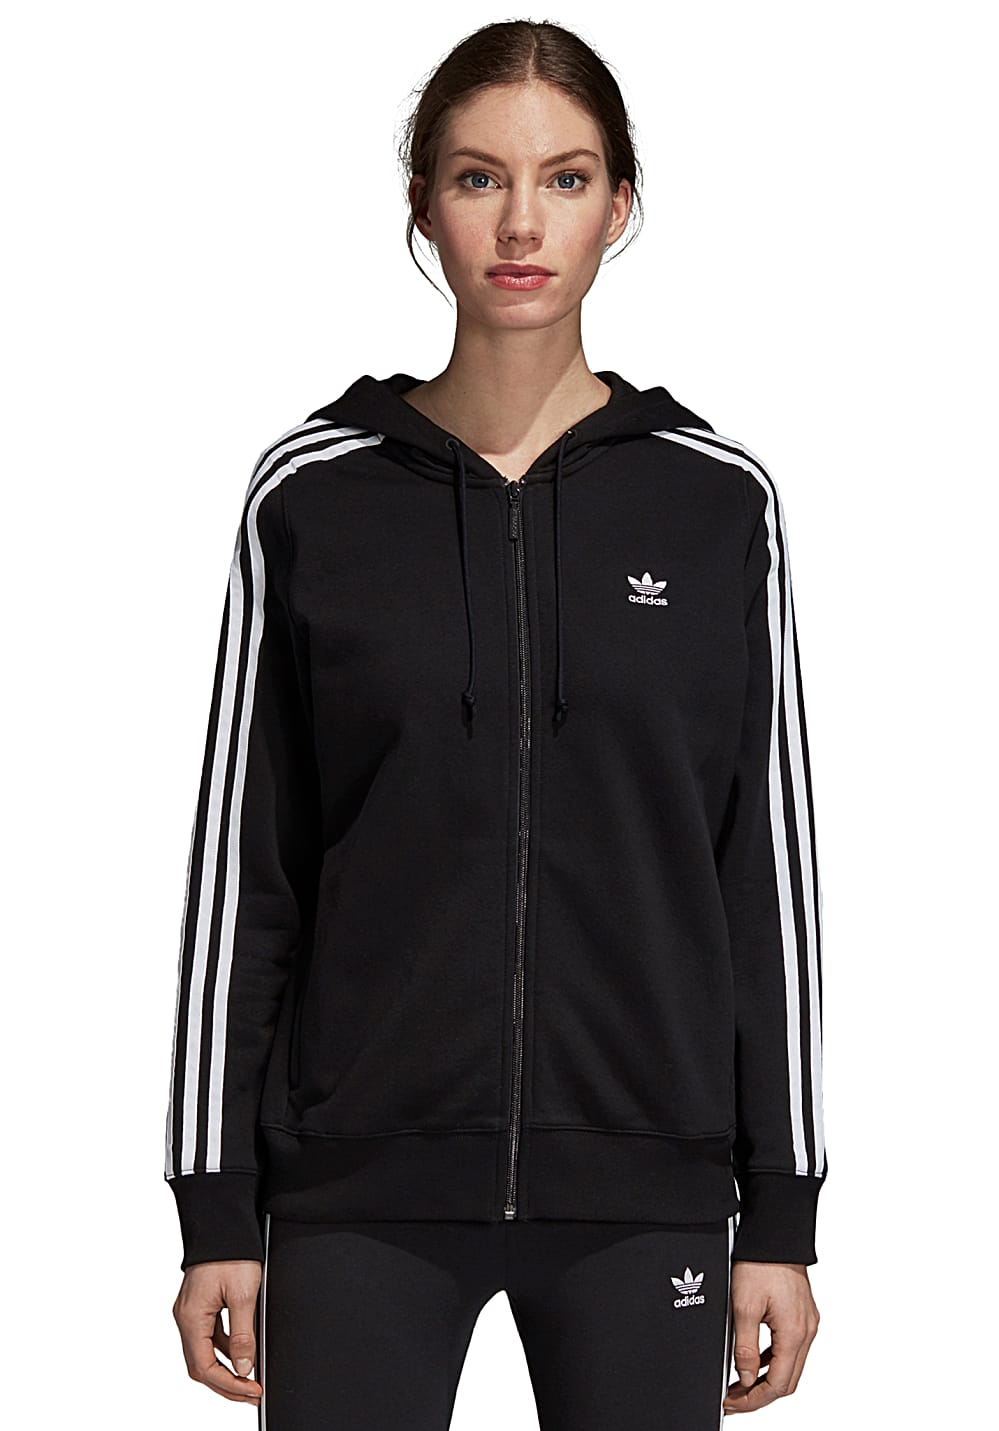 giacca adidas femminile zip laterale